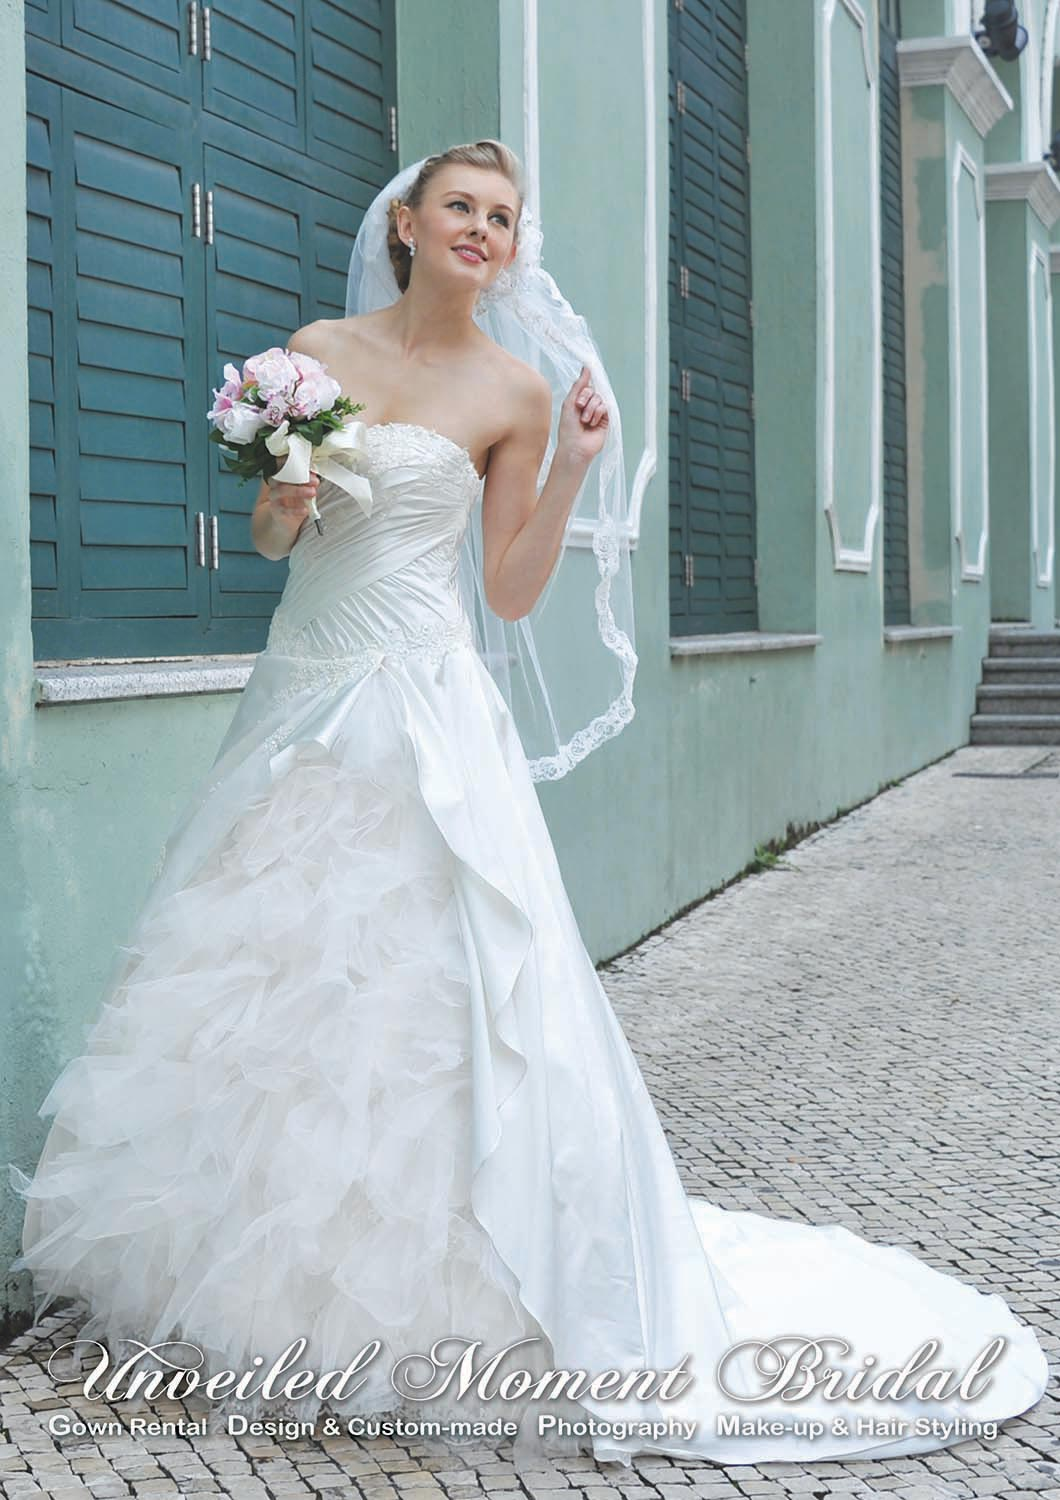 Strapless wedding gown with embellished, sweetheart ruched bodice, a multi-layer tulle inset, and a brush train 無肩肩帶low-cut, 心形胸, 多層紗裙縫拖尾婚紗